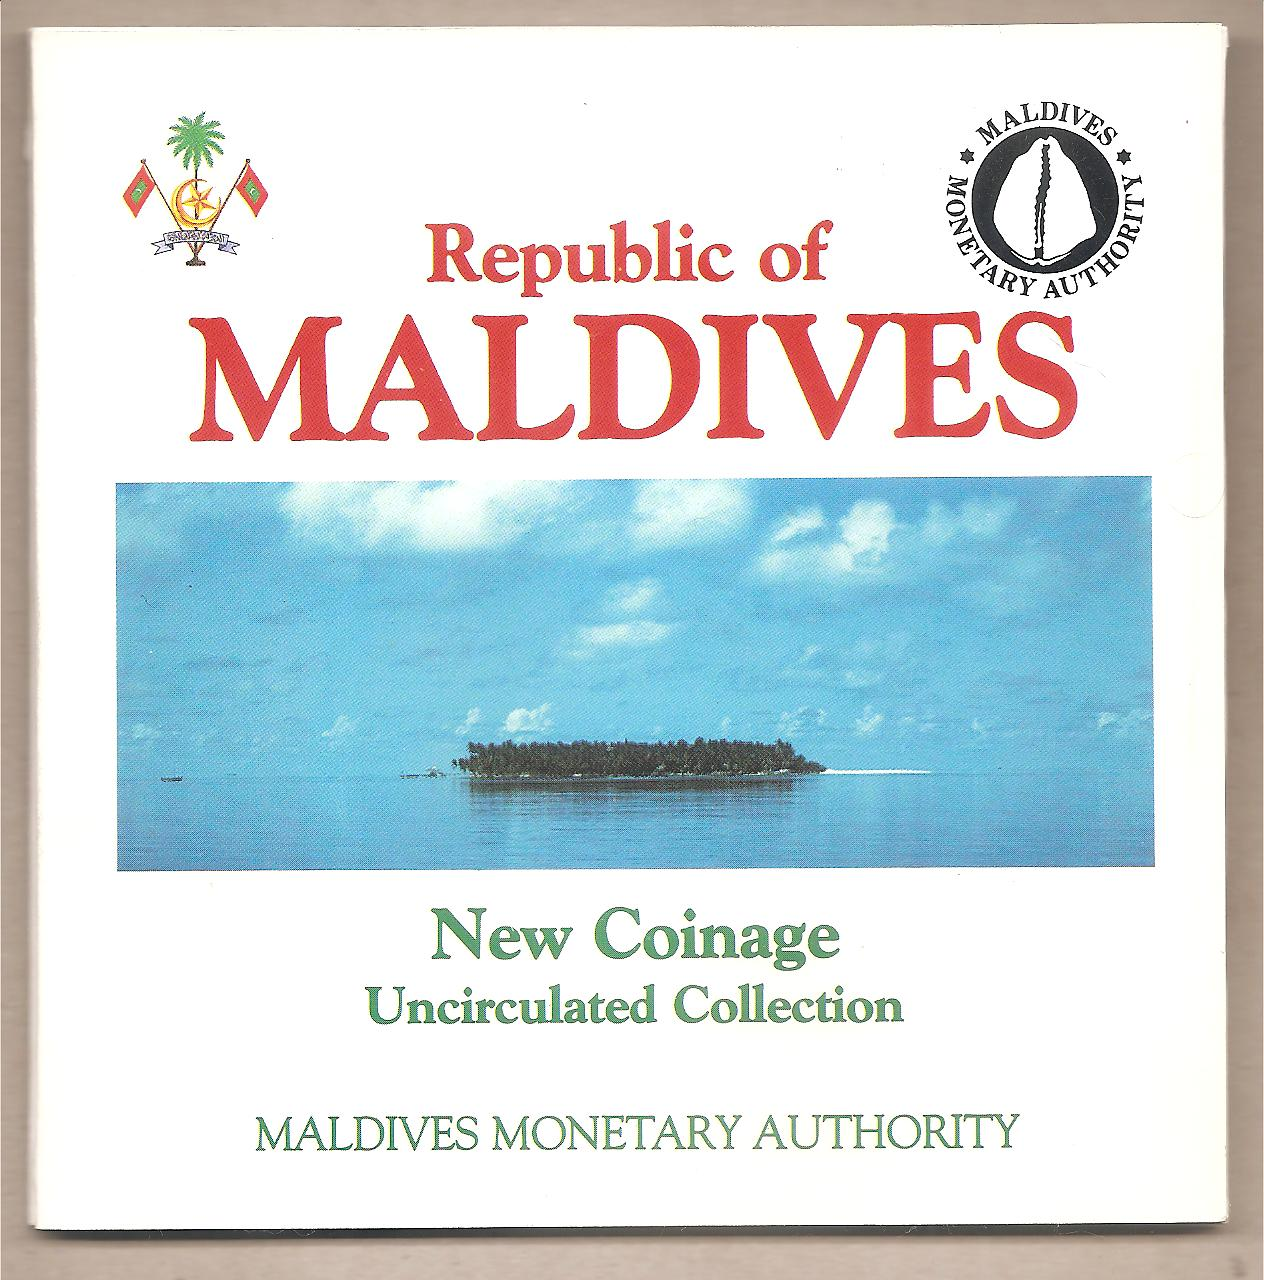 50709 - Maldive - New Coinage Uncirculated Collection Mint Set - 1984